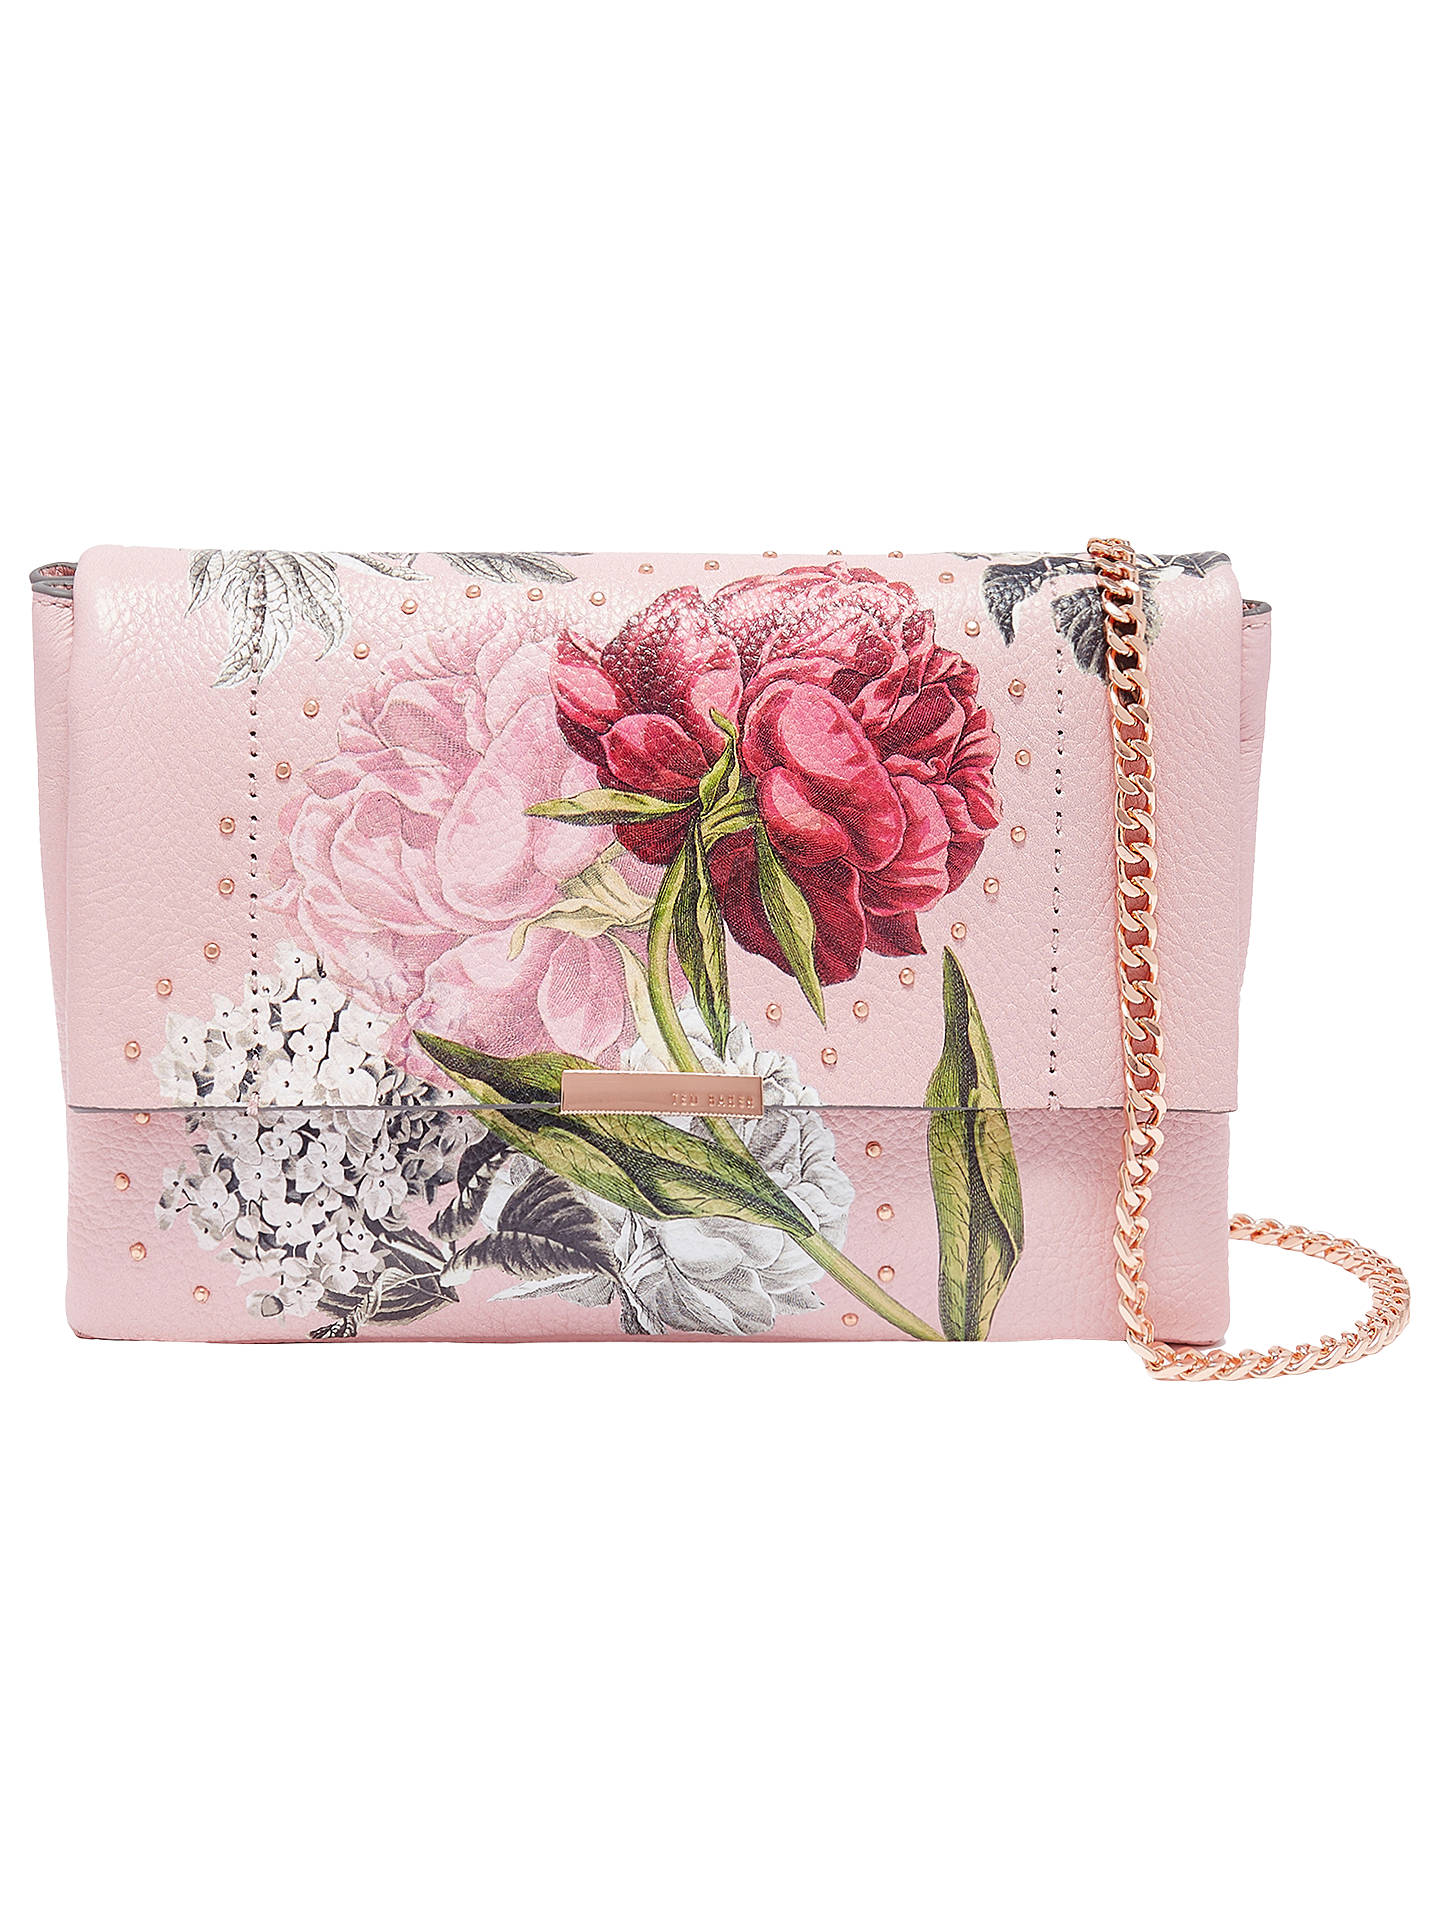 03c7b6a8c Buy Ted Baker Ploomi Palace Gardens Leather Cross Body Bag